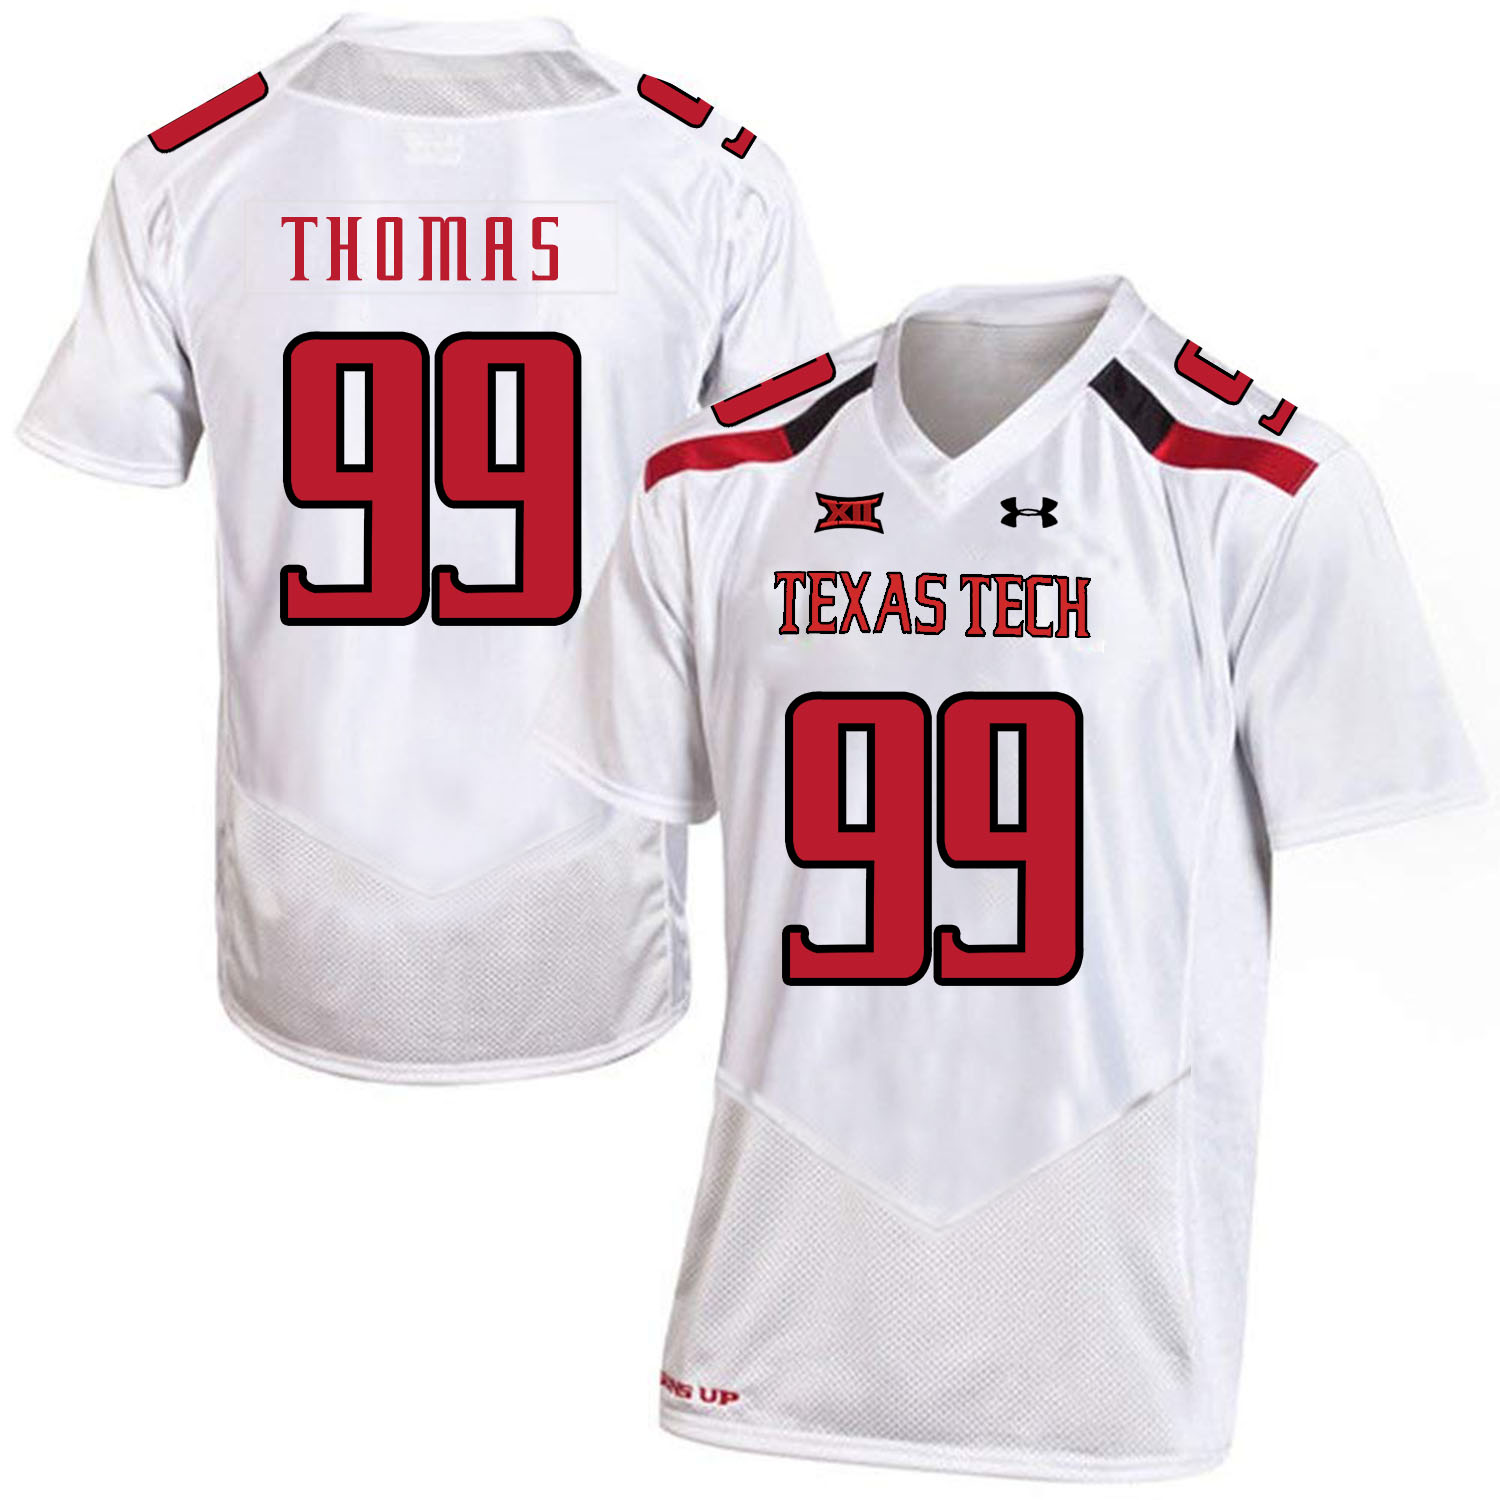 Texas Tech Red Raiders 99 Mychealon Thomas White College Football Jersey